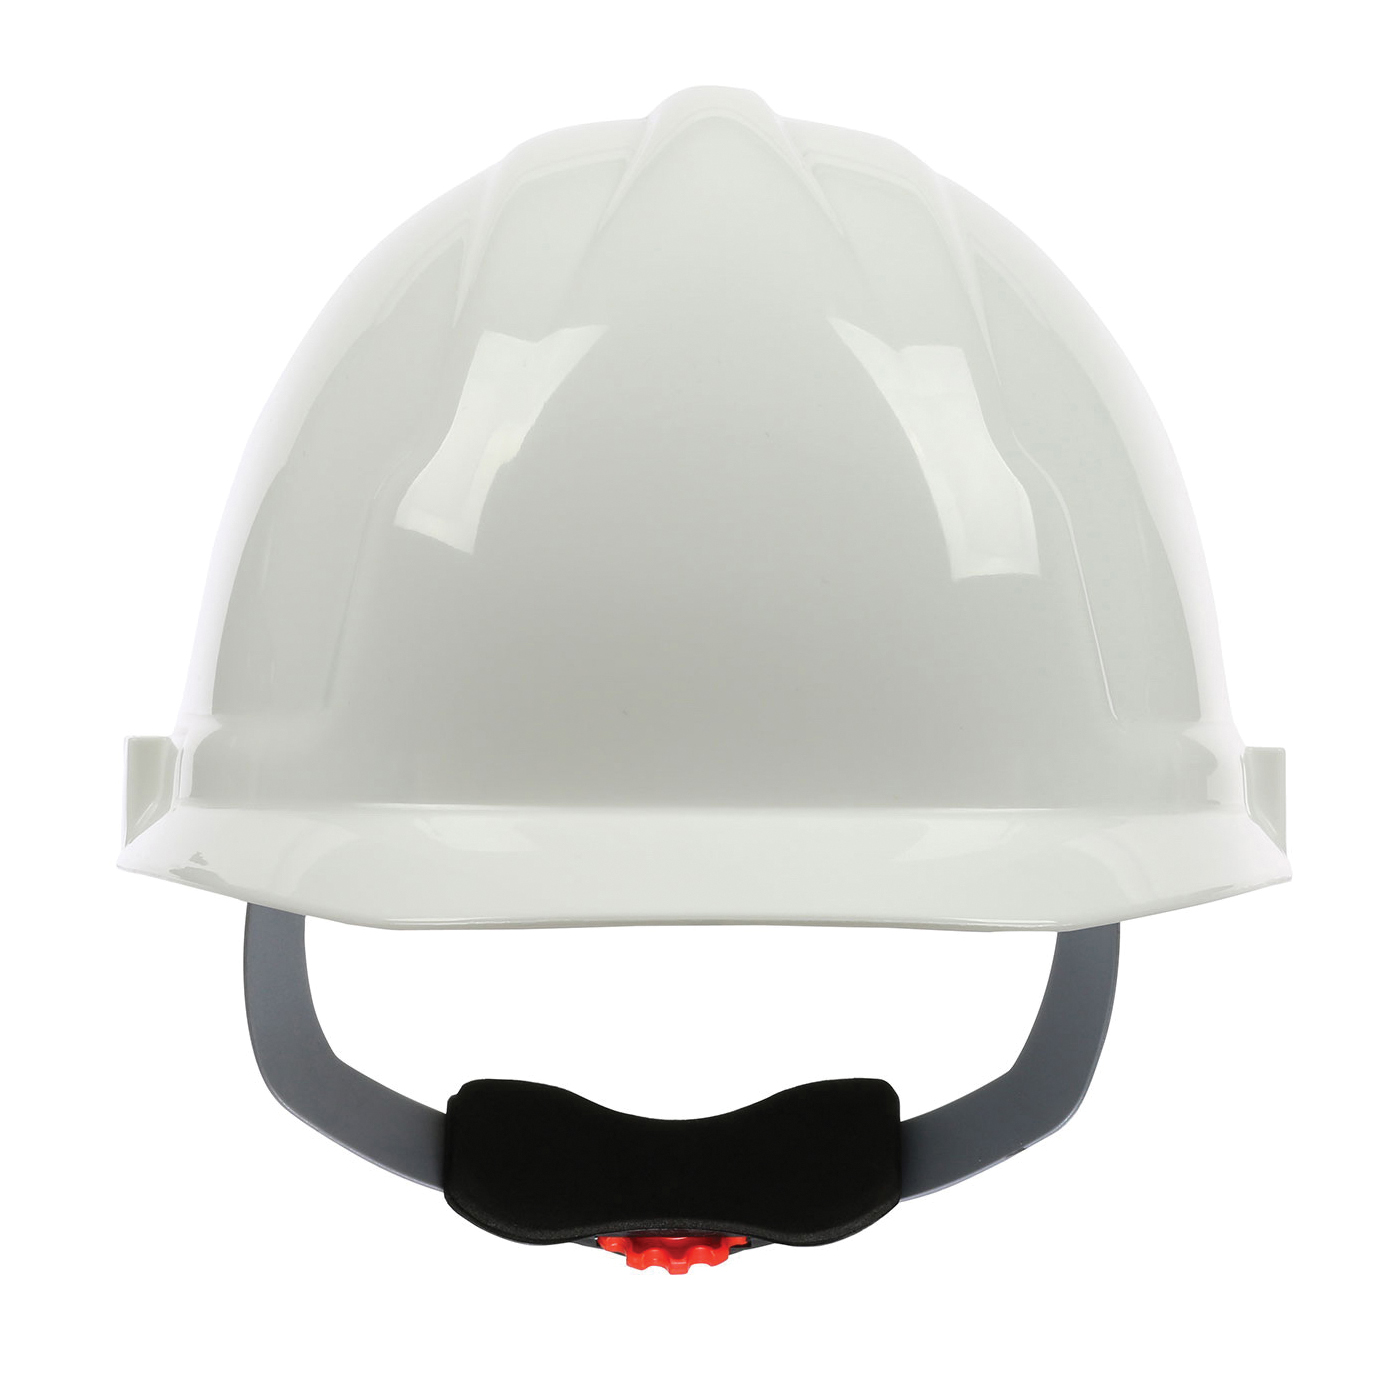 PIP® 280-CW4200-10 Cap Style Hard Hat, SZ 6-5/8 Fits Mini Hat, SZ 8 Fits Max Hat, HDPE/Polyester, 4-Point Suspension, ANSI Electrical Class Rating: Class E, ANSI Impact Rating: ANSI Z89.1, Wheel Ratchet Adjustment